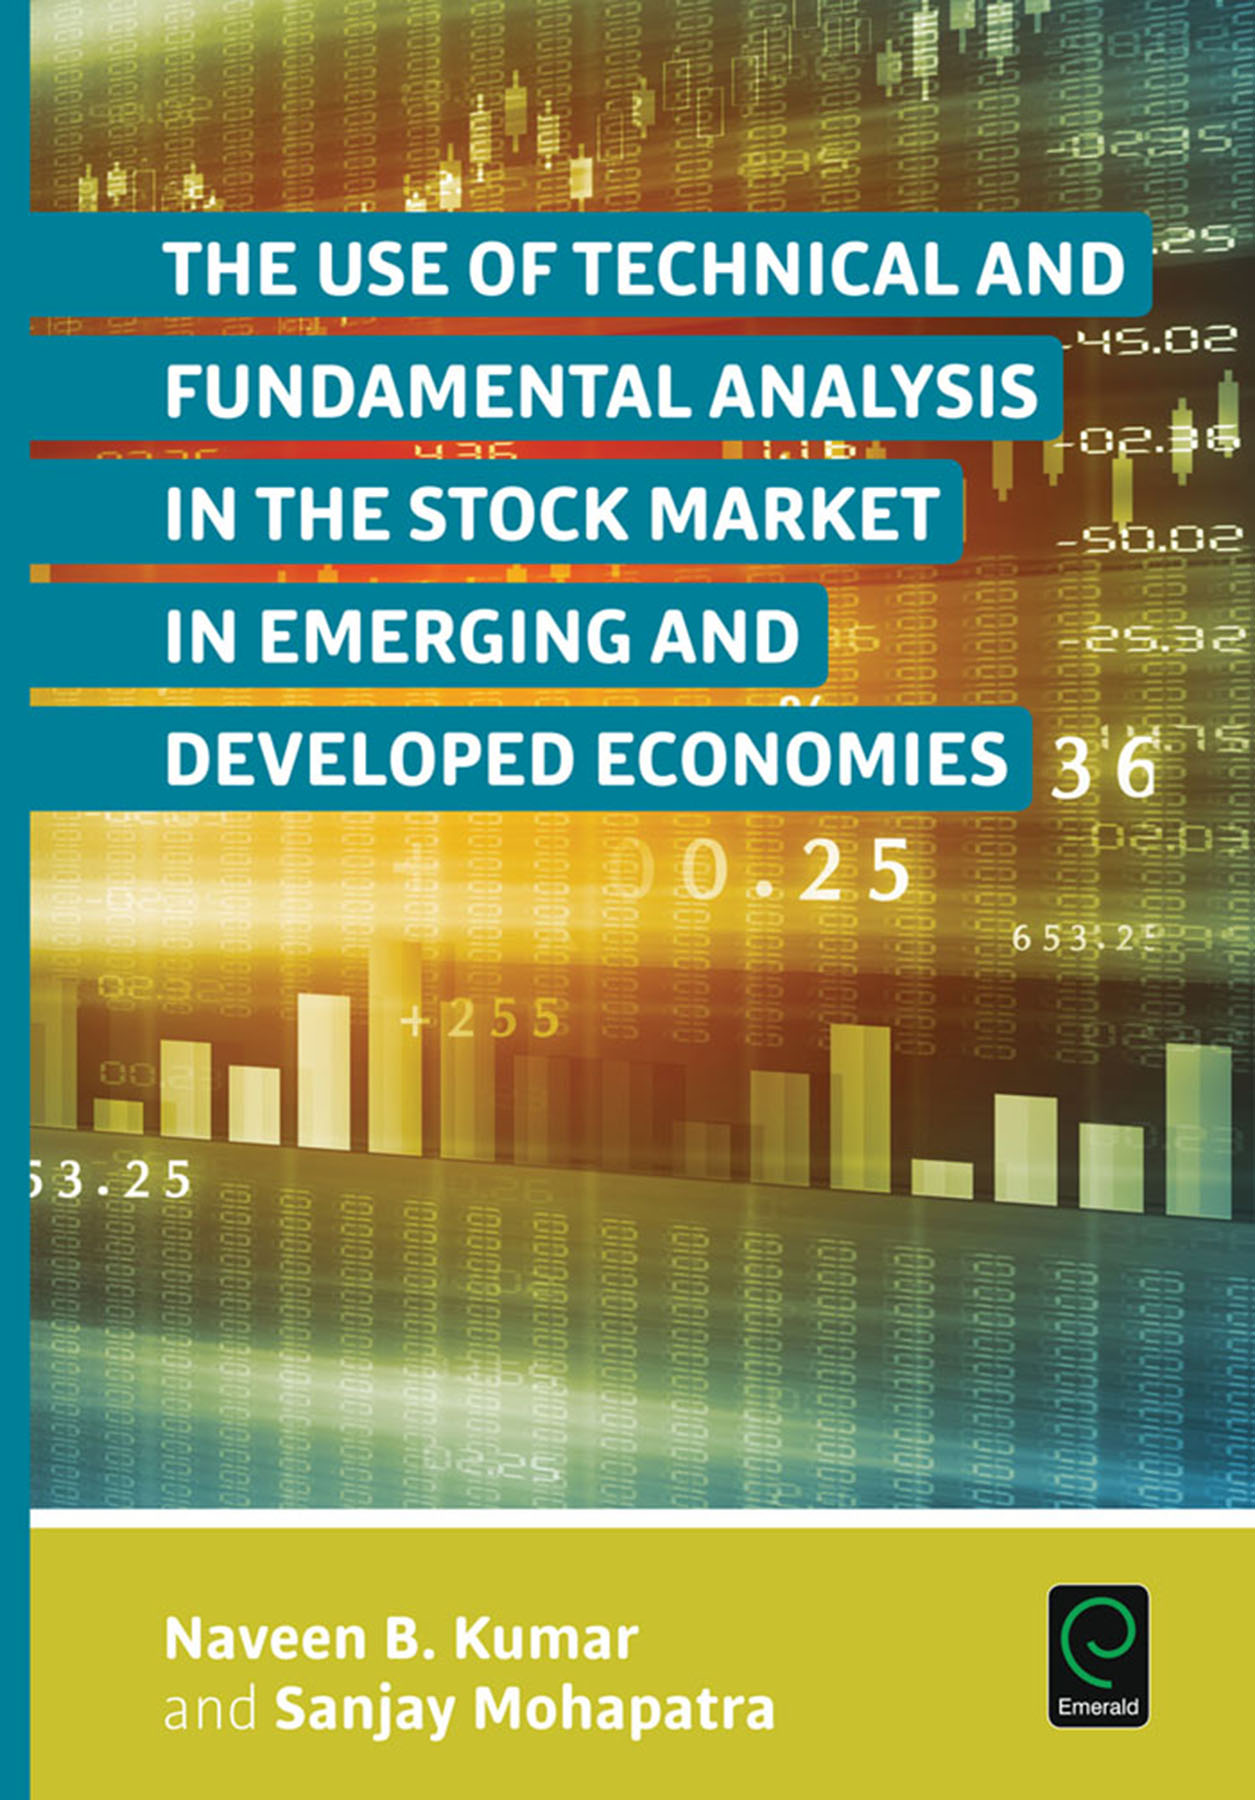 The Use of Technical and Fundamental Analysis in the Stock